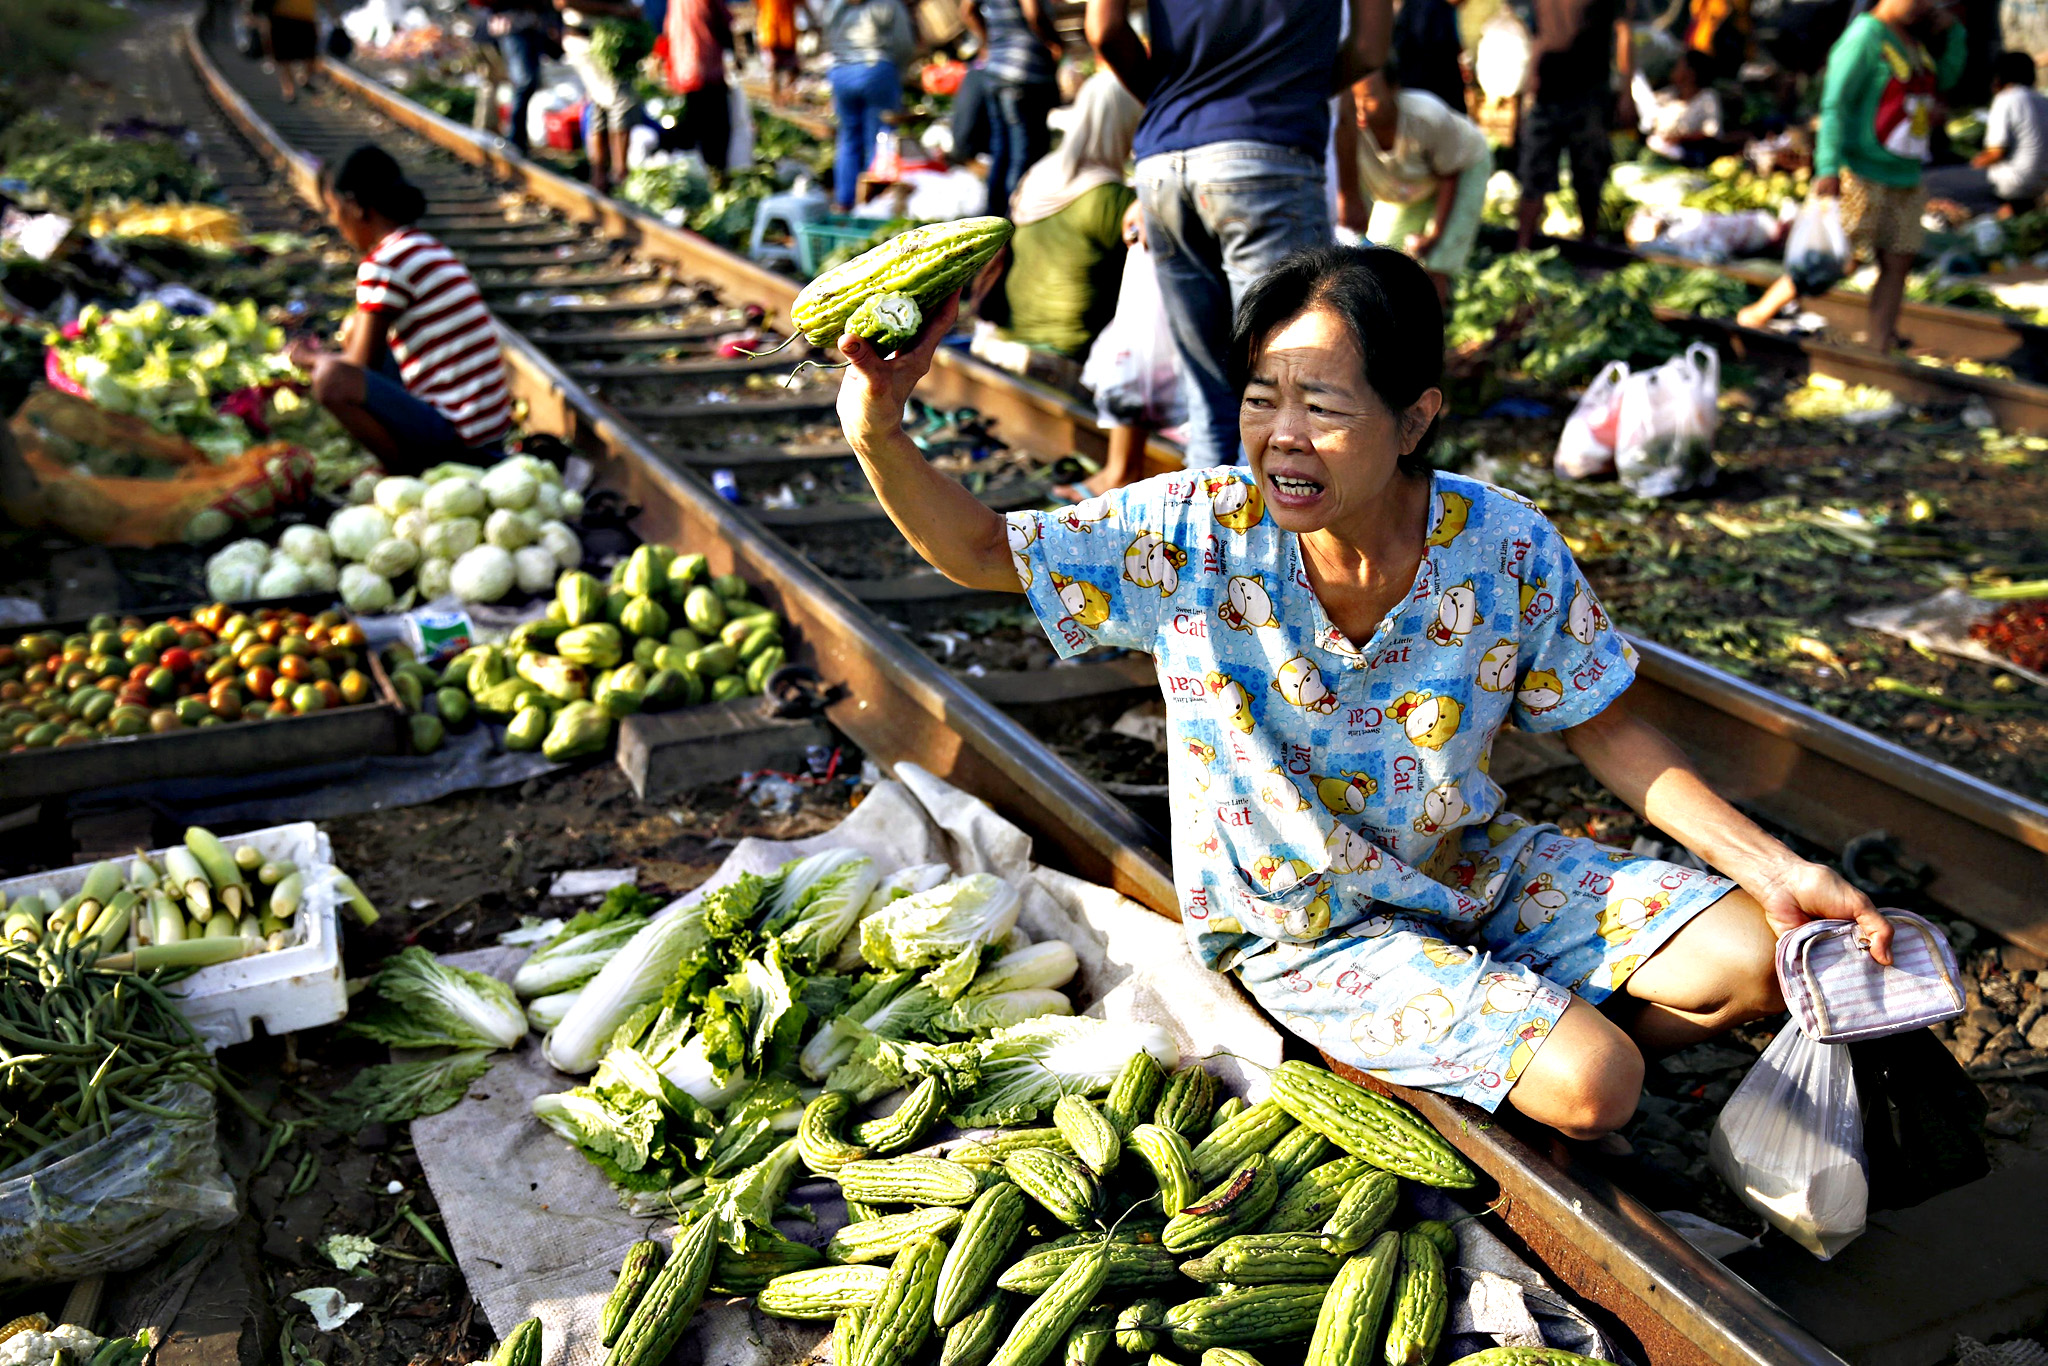 A customer asks for the price of a bittergourd at Duri market on a railway track in Jakarta, on Friday. Indonesia's annual inflation rate cooled to the lowest in six years in December, which might pave the way for the central bank to cut a benchmark rate held at 7.50 percent since February 2015.